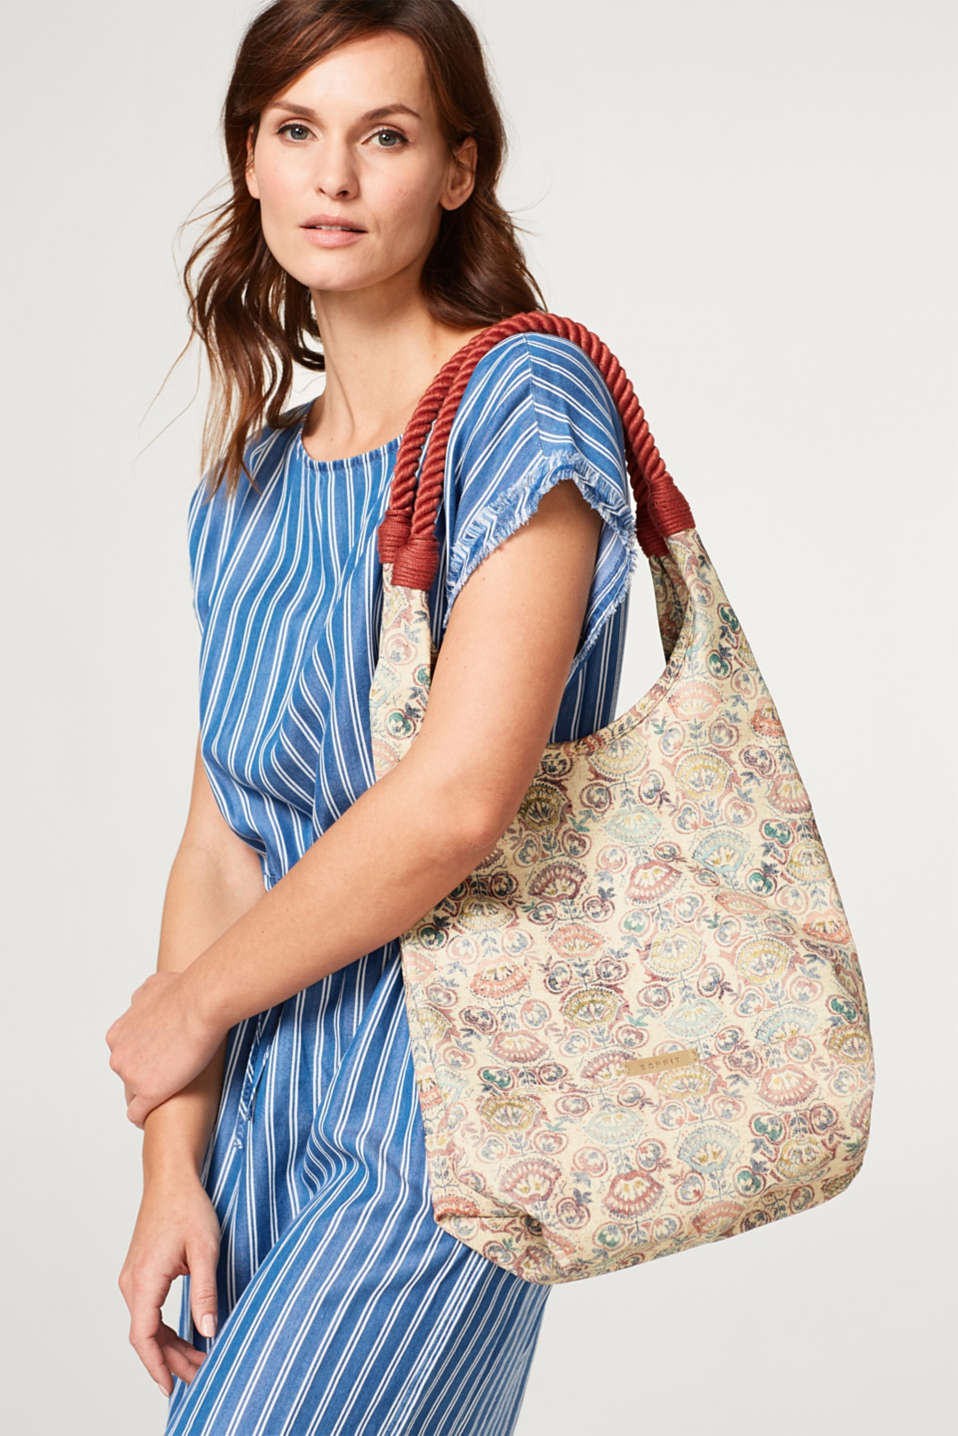 Patterned shoulder bag in a rustic wash